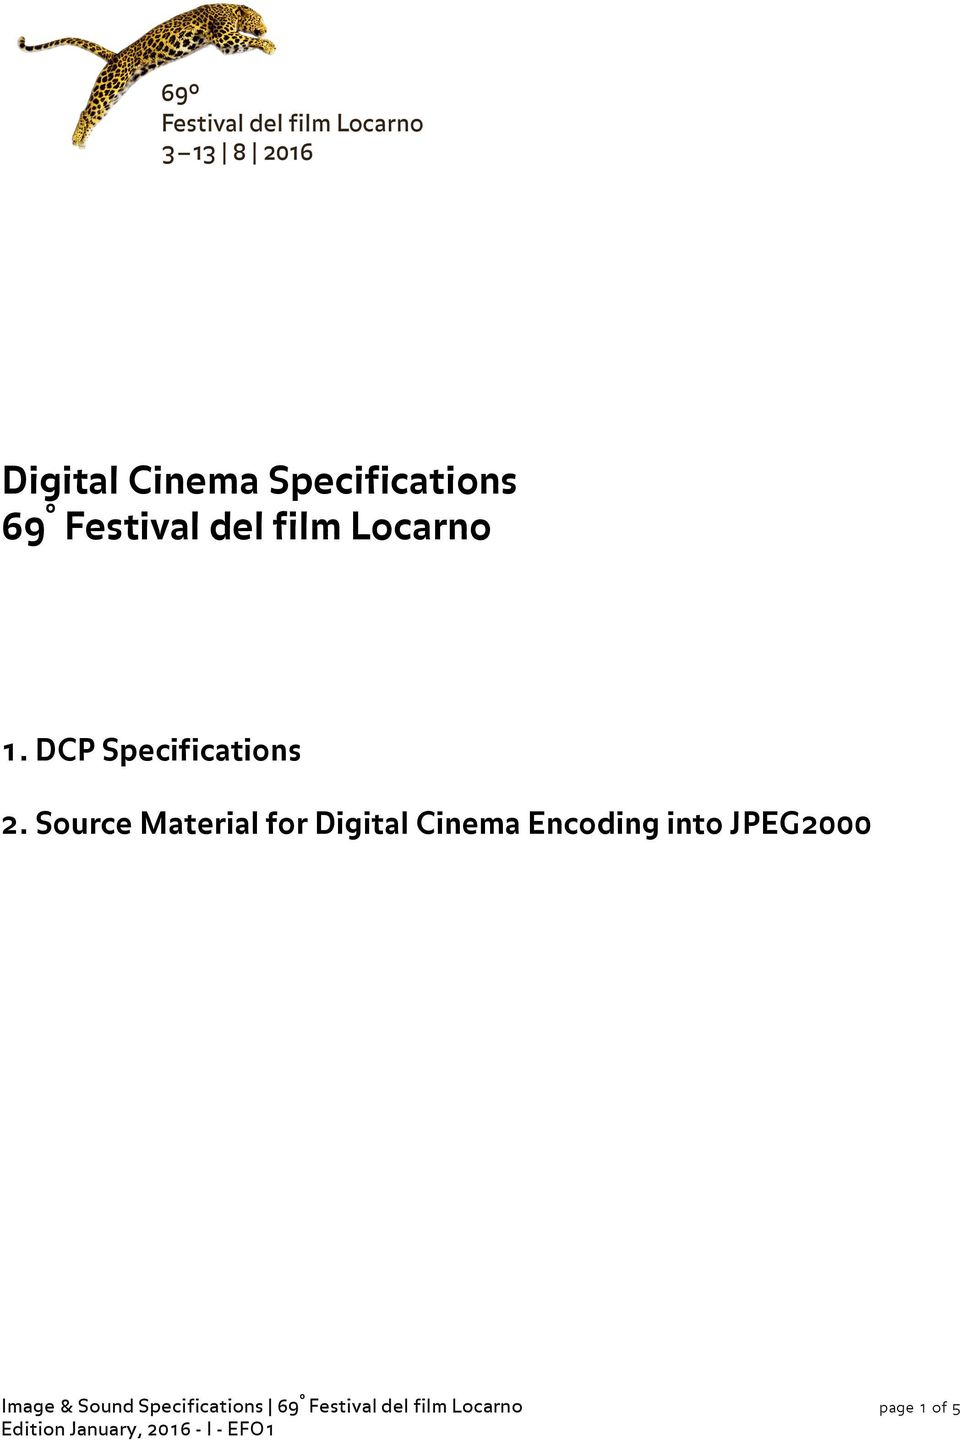 Source Material for Digital Cinema Encoding into